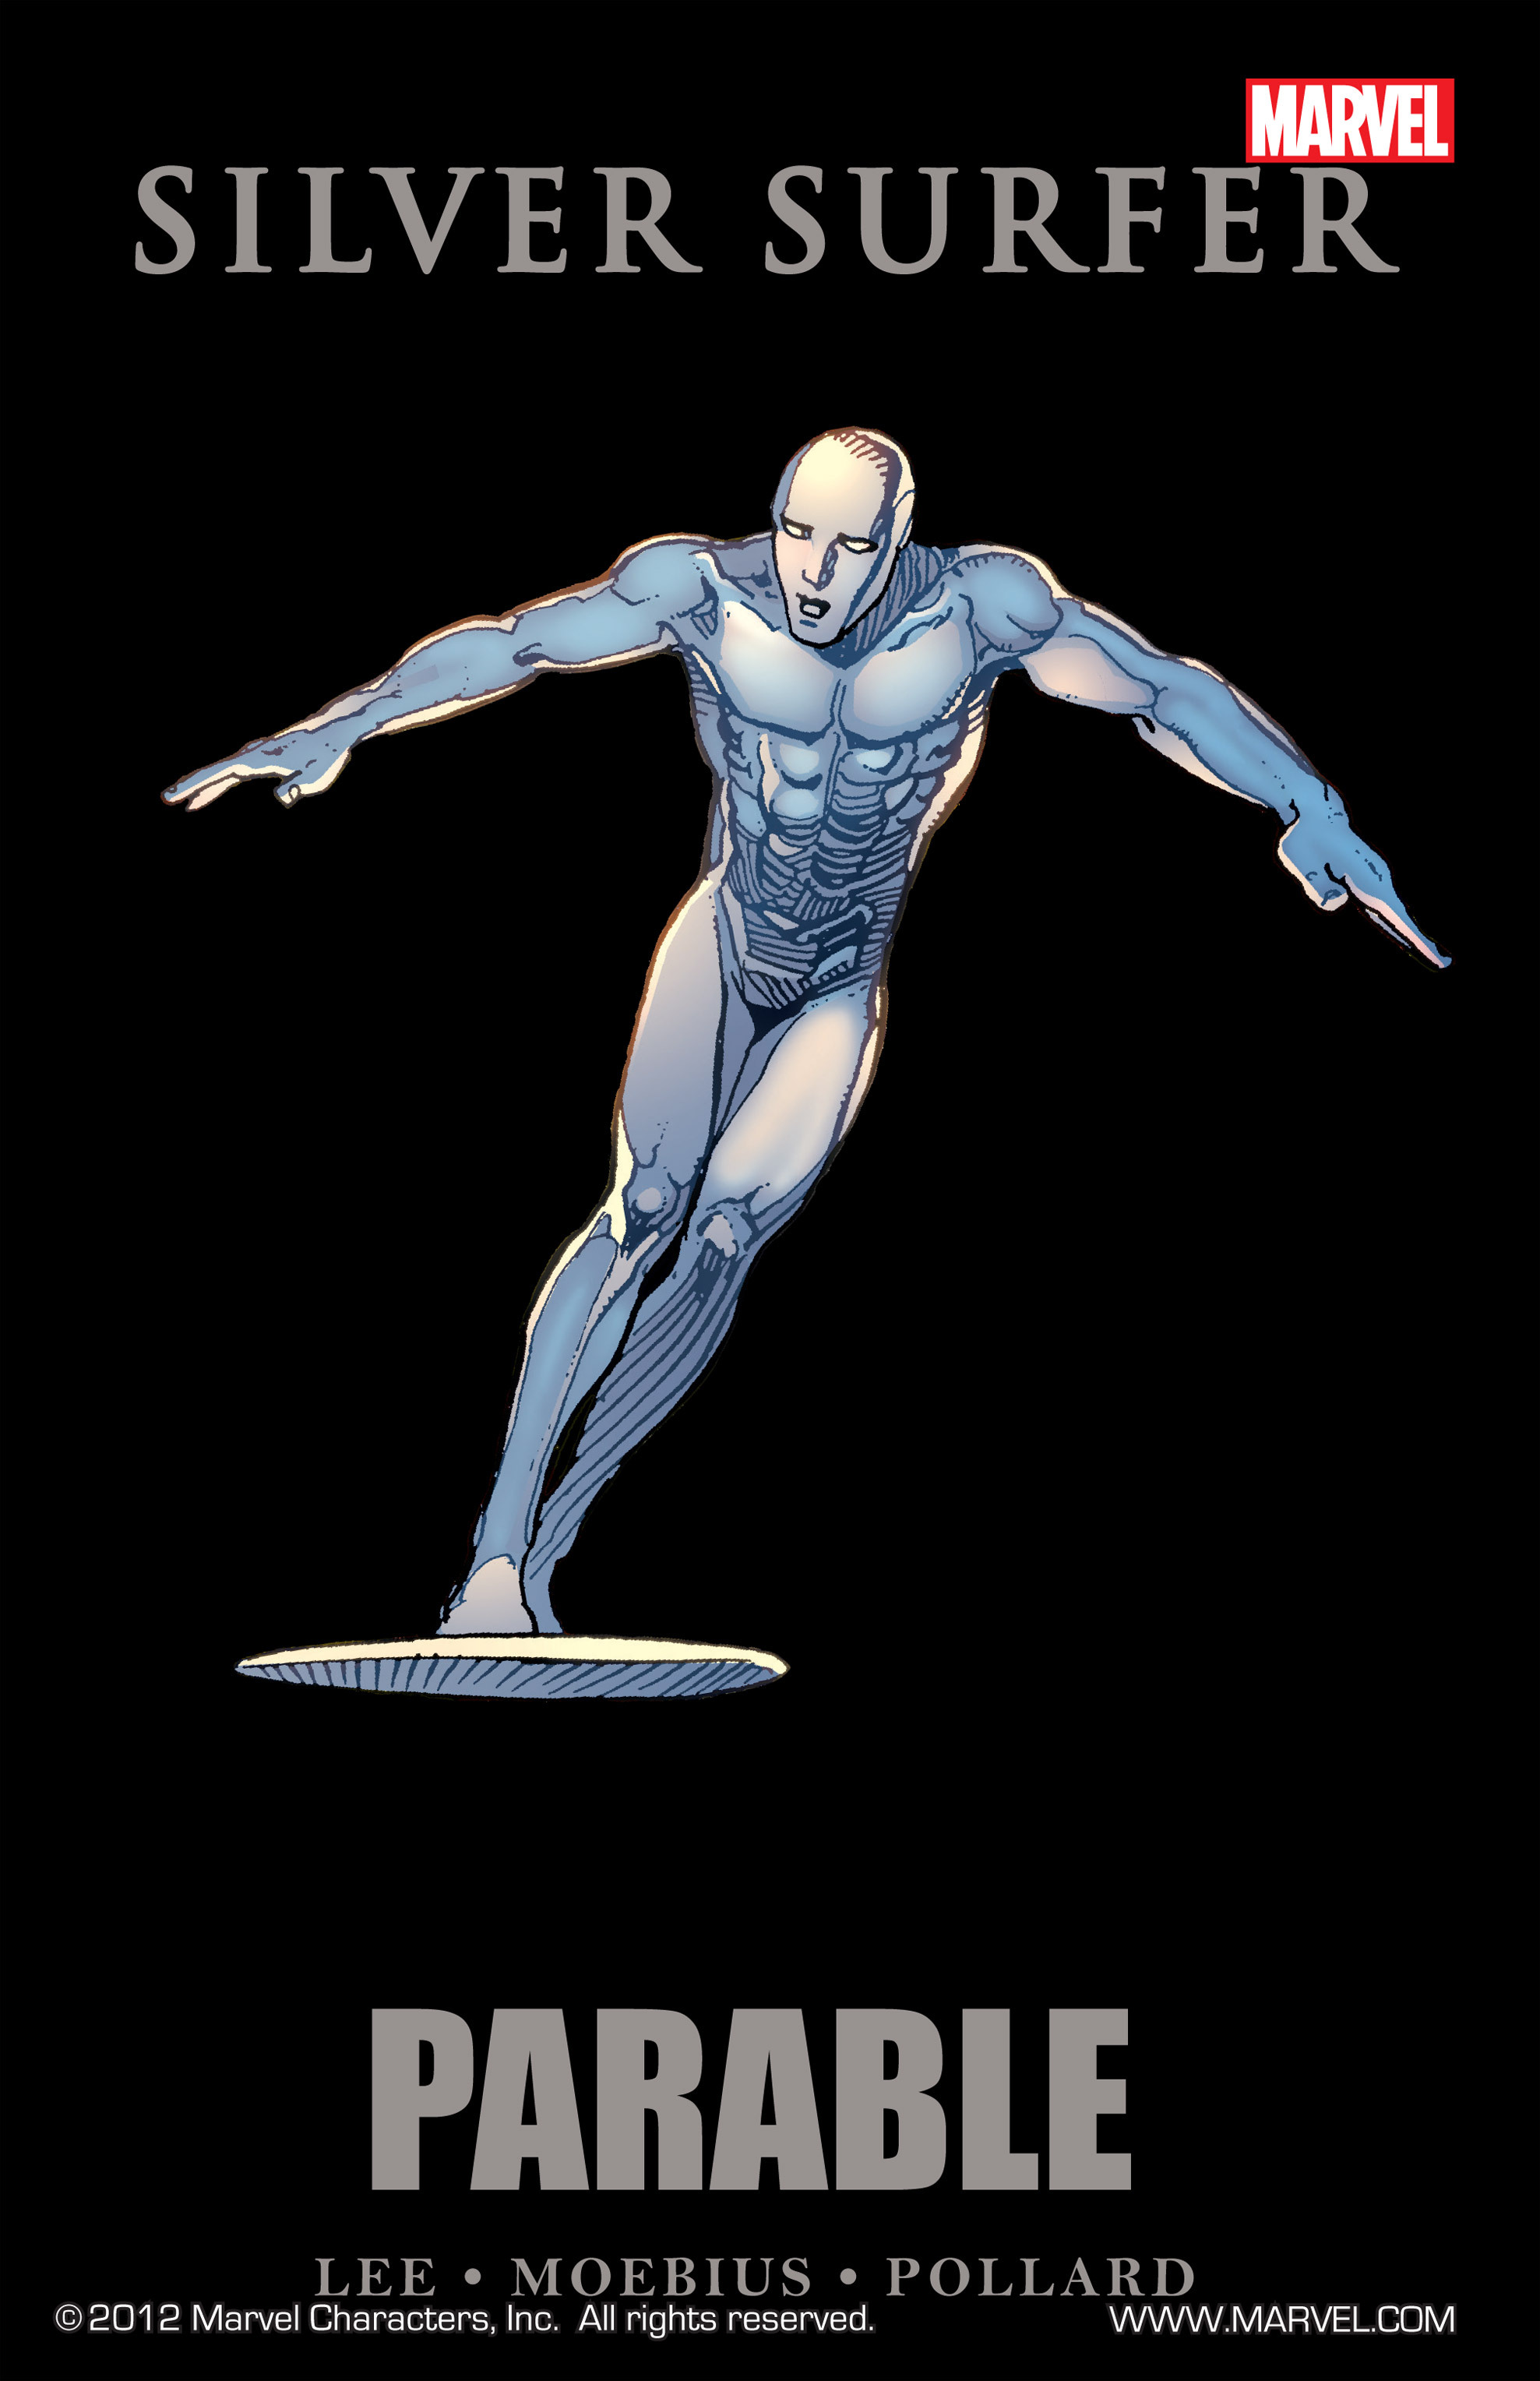 Read online Silver Surfer: Parable comic -  Issue # TPB - 1